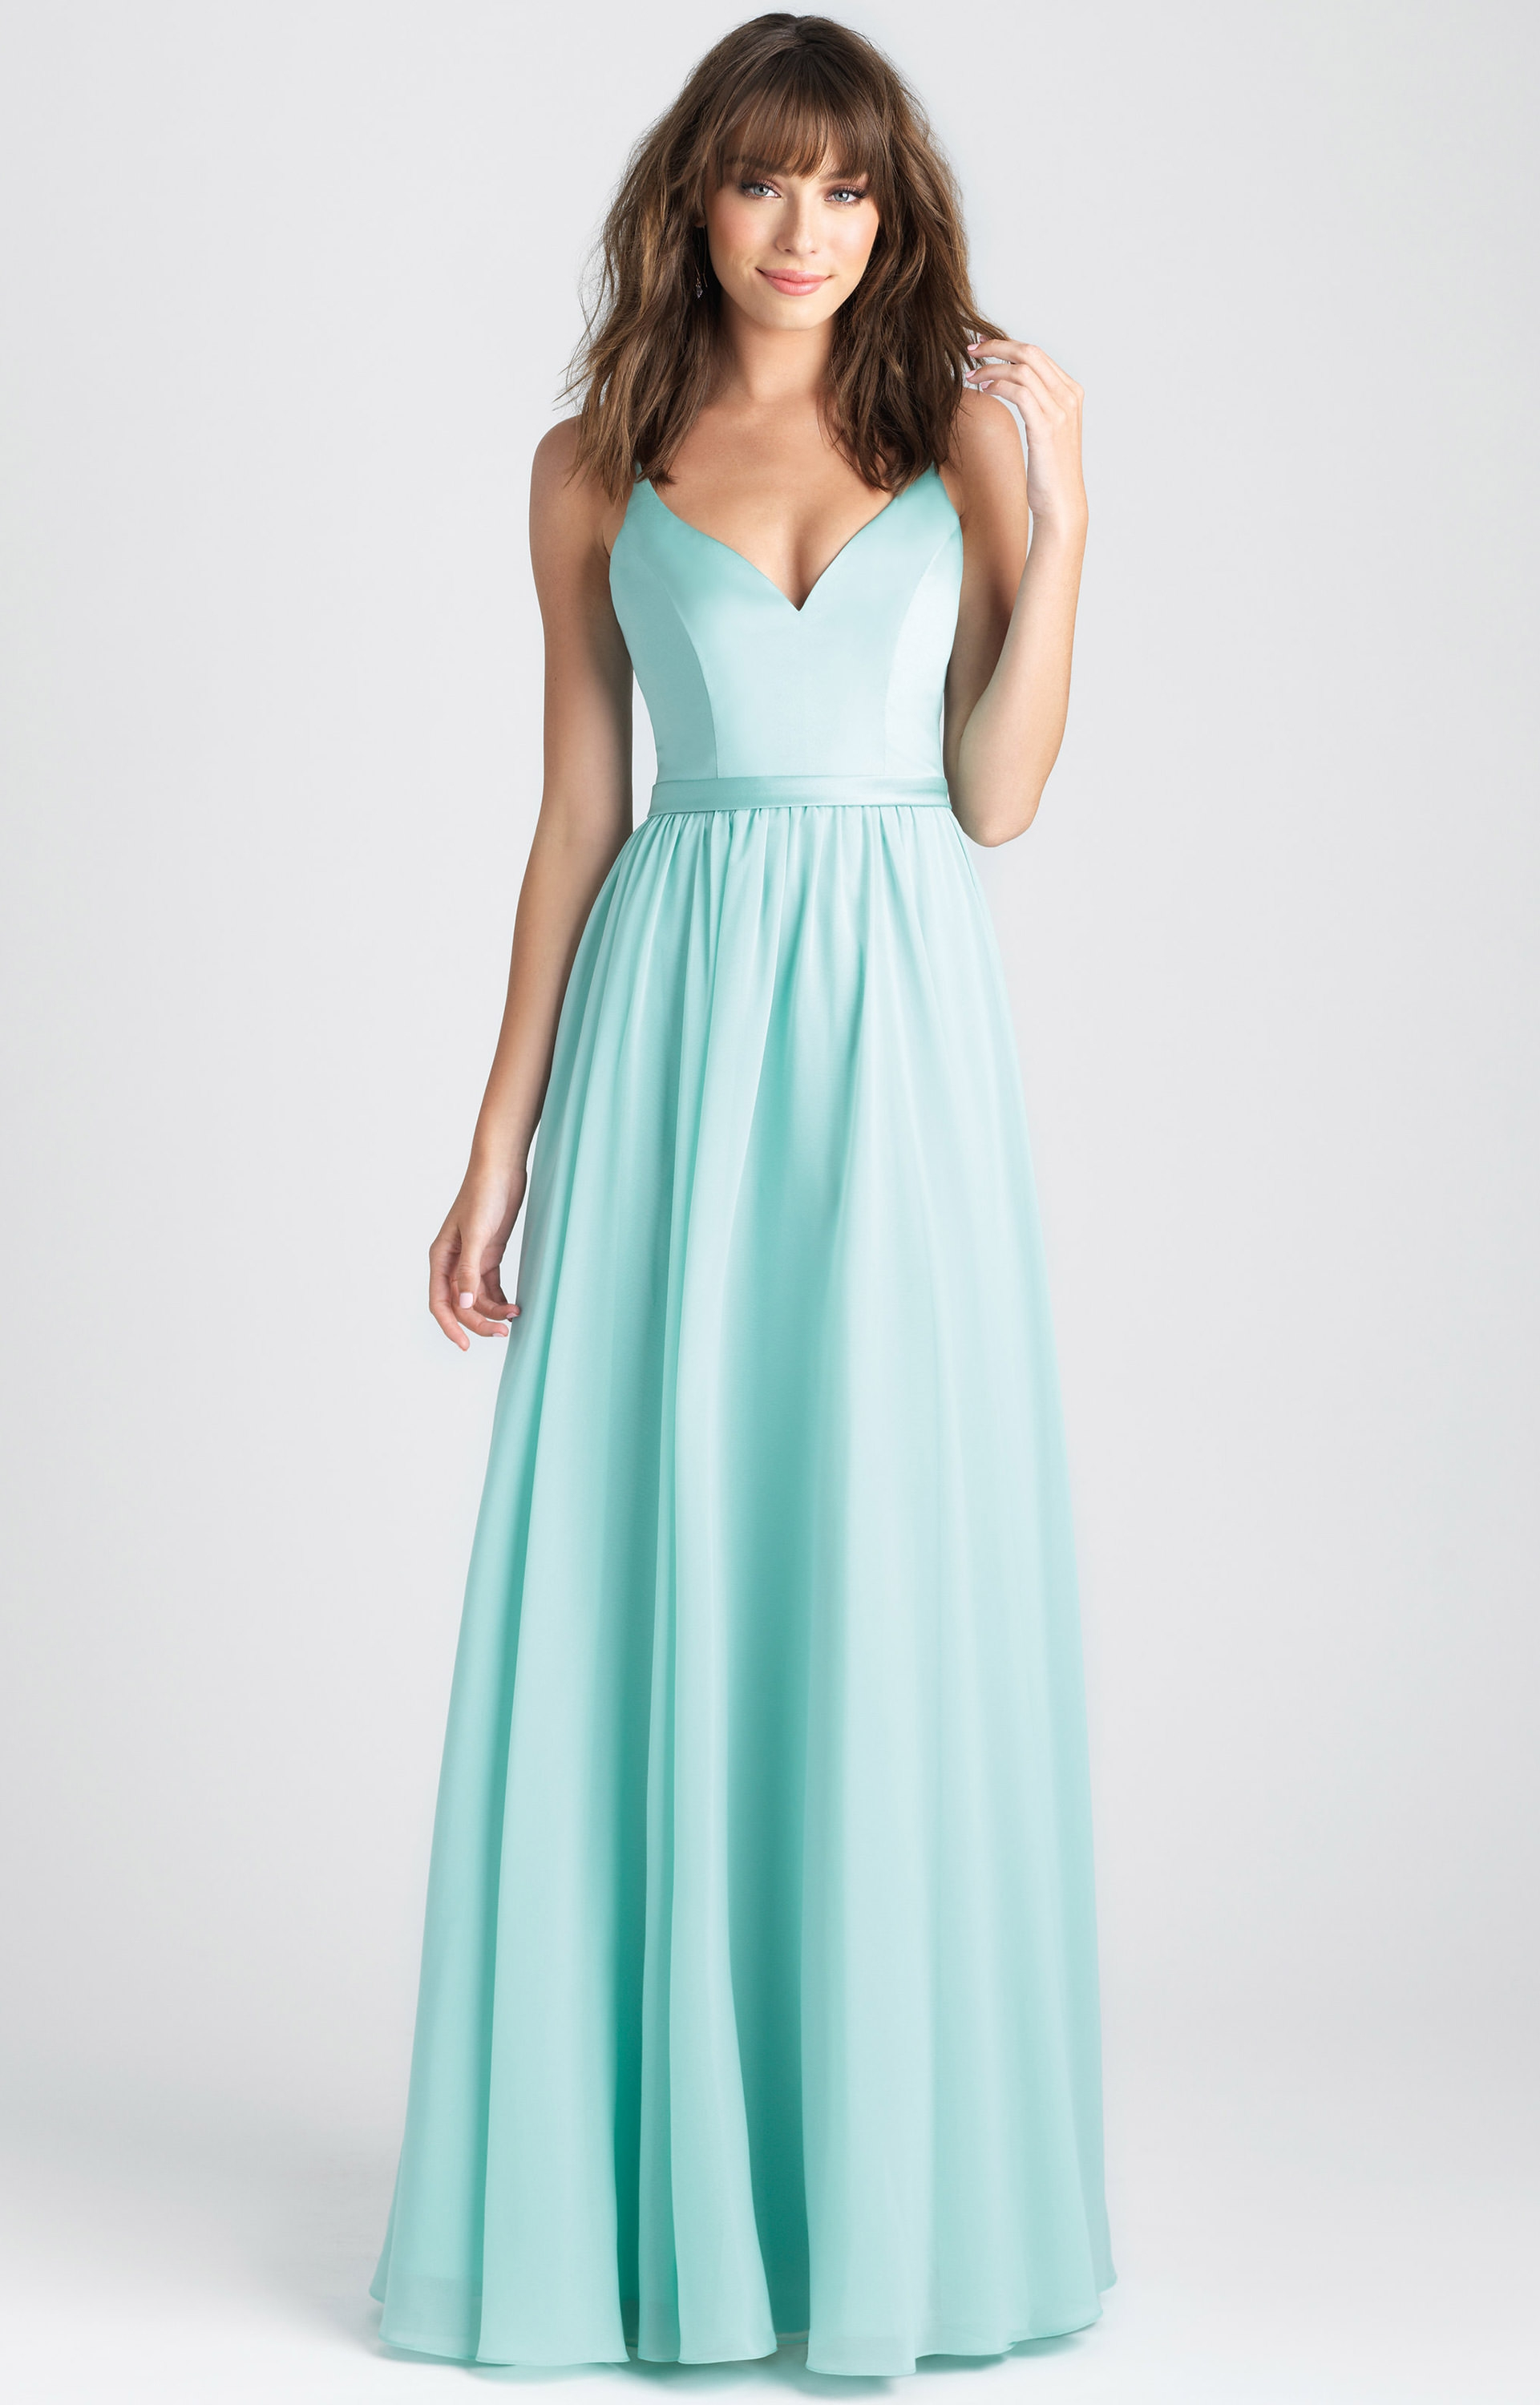 Allure Bridesmaids 1503 - A-Line V-Neck Chiffon